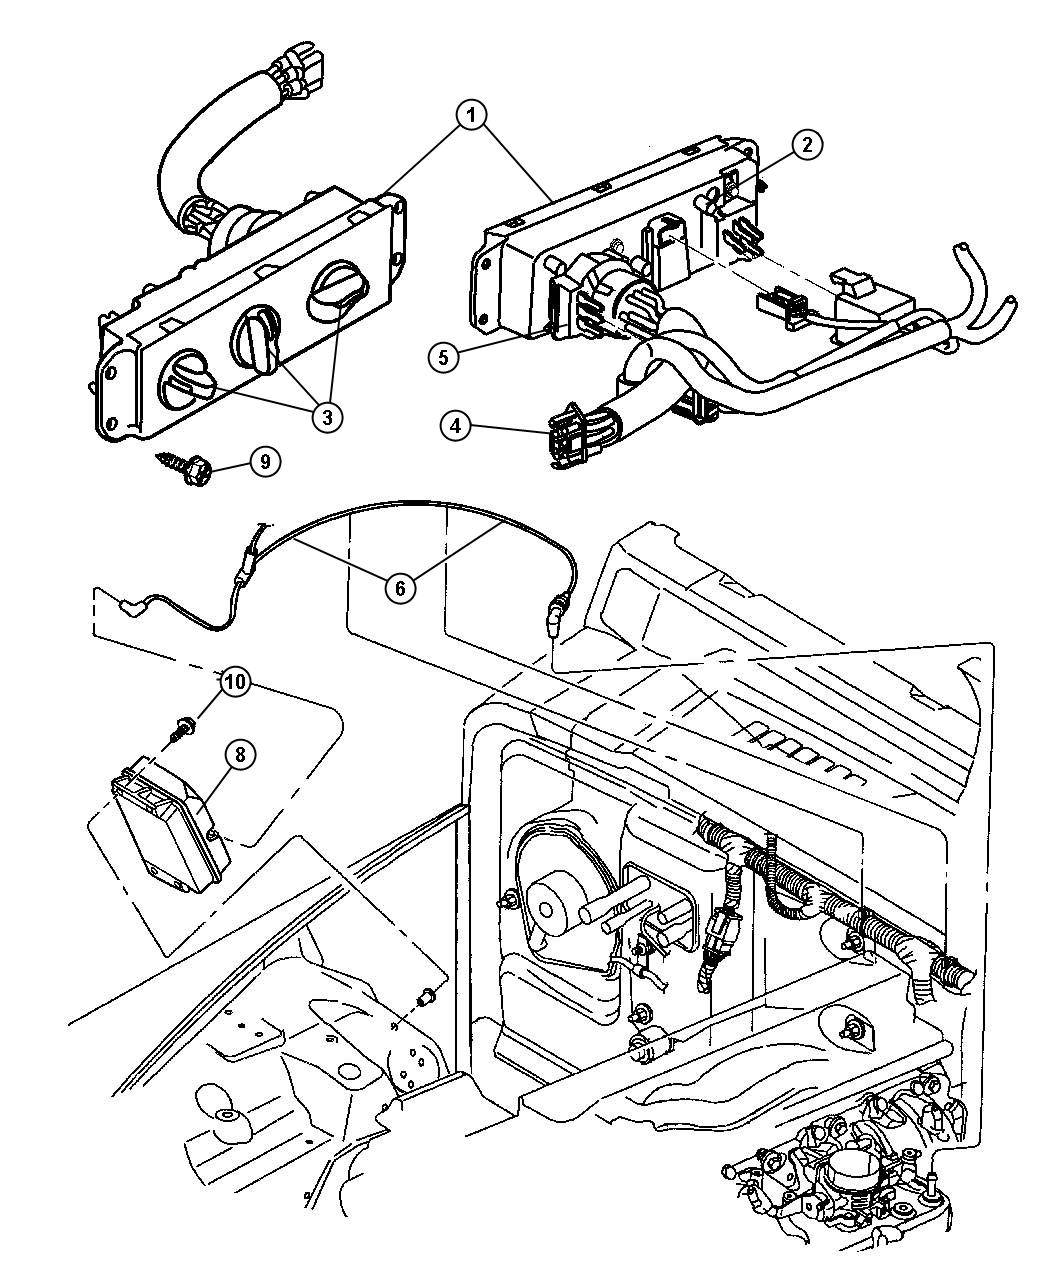 Jeep Wrangler Harness Used For A C And Heater